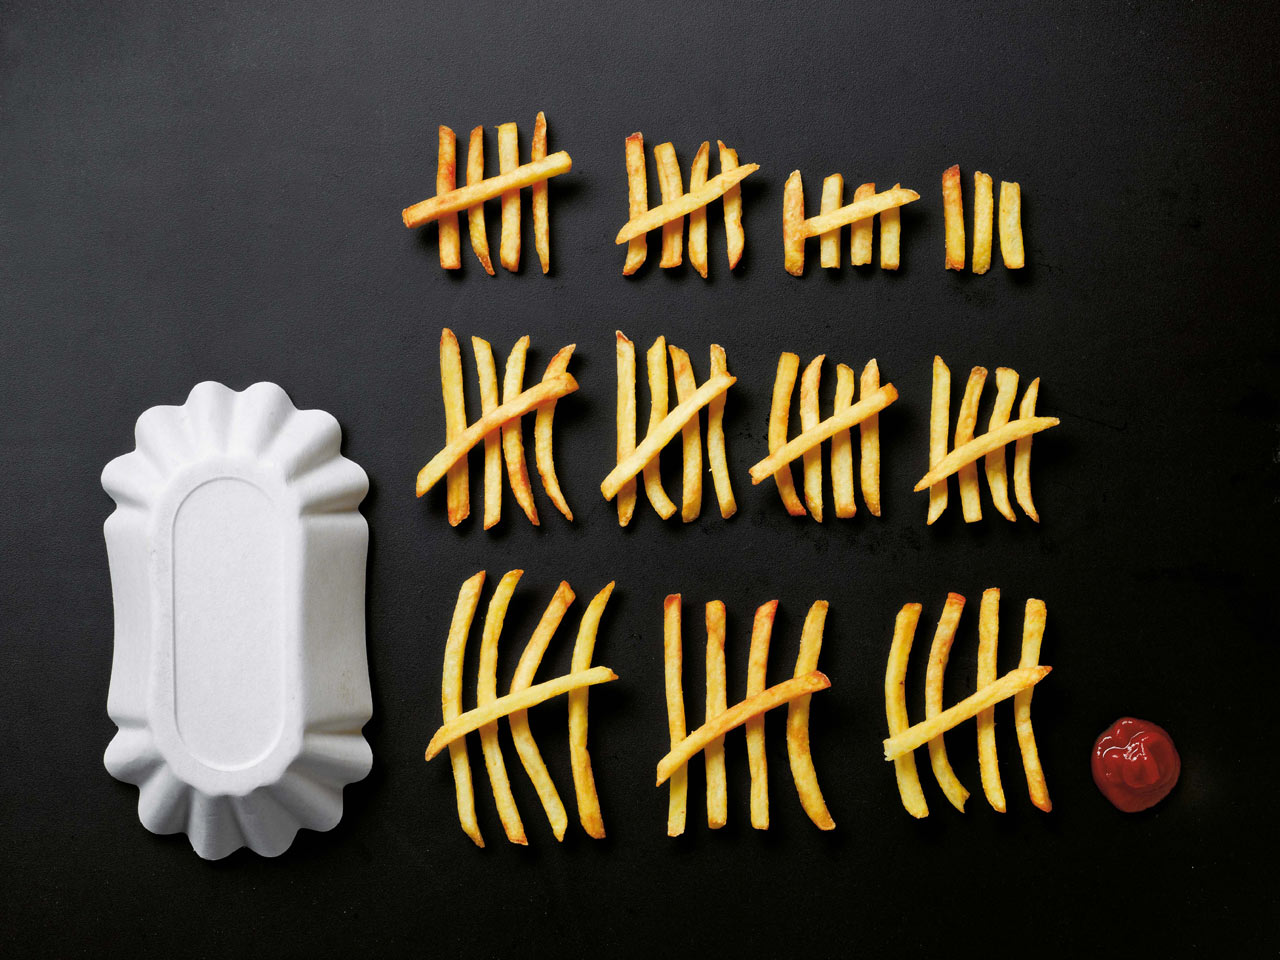 ursus-wehrli-fries-arranged-neatly